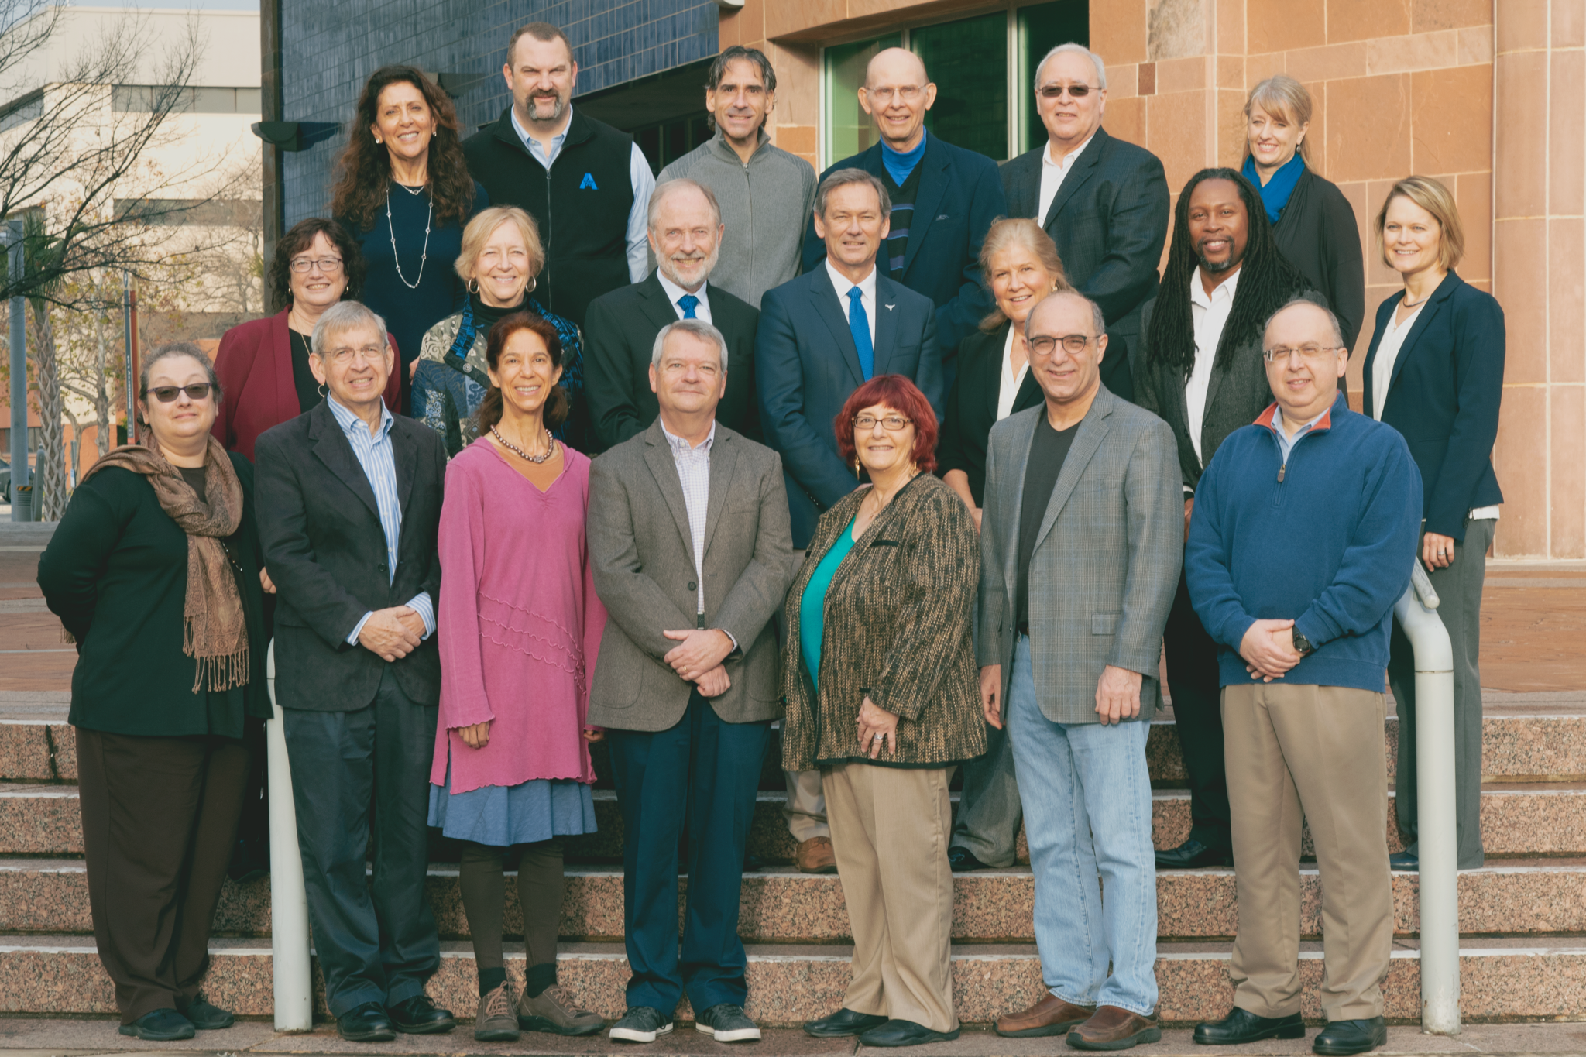 Group photo of the Fellows of the UT System Academy of Distinguished Teachers